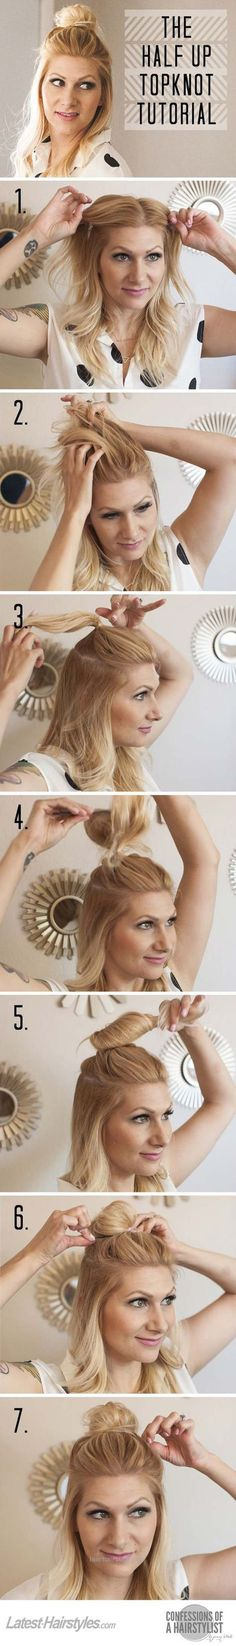 Cool and Easy DIY Hairstyles - The Half Up Top Knot - Quick and Easy Ideas for Back to School Styles for Medium, Short and Long Hair - Fun Tips and Best Step by Step Tutorials for Teens, Prom, Wedding (Cool Teen Hairstyles) Cool Easy Hairstyles, Teen Hairstyles, Wedding Hairstyles, Long Haircuts, Hairstyle Ideas, Makeup Hairstyle, Summer Hairstyles, Homecoming Hairstyles, Hair Makeup